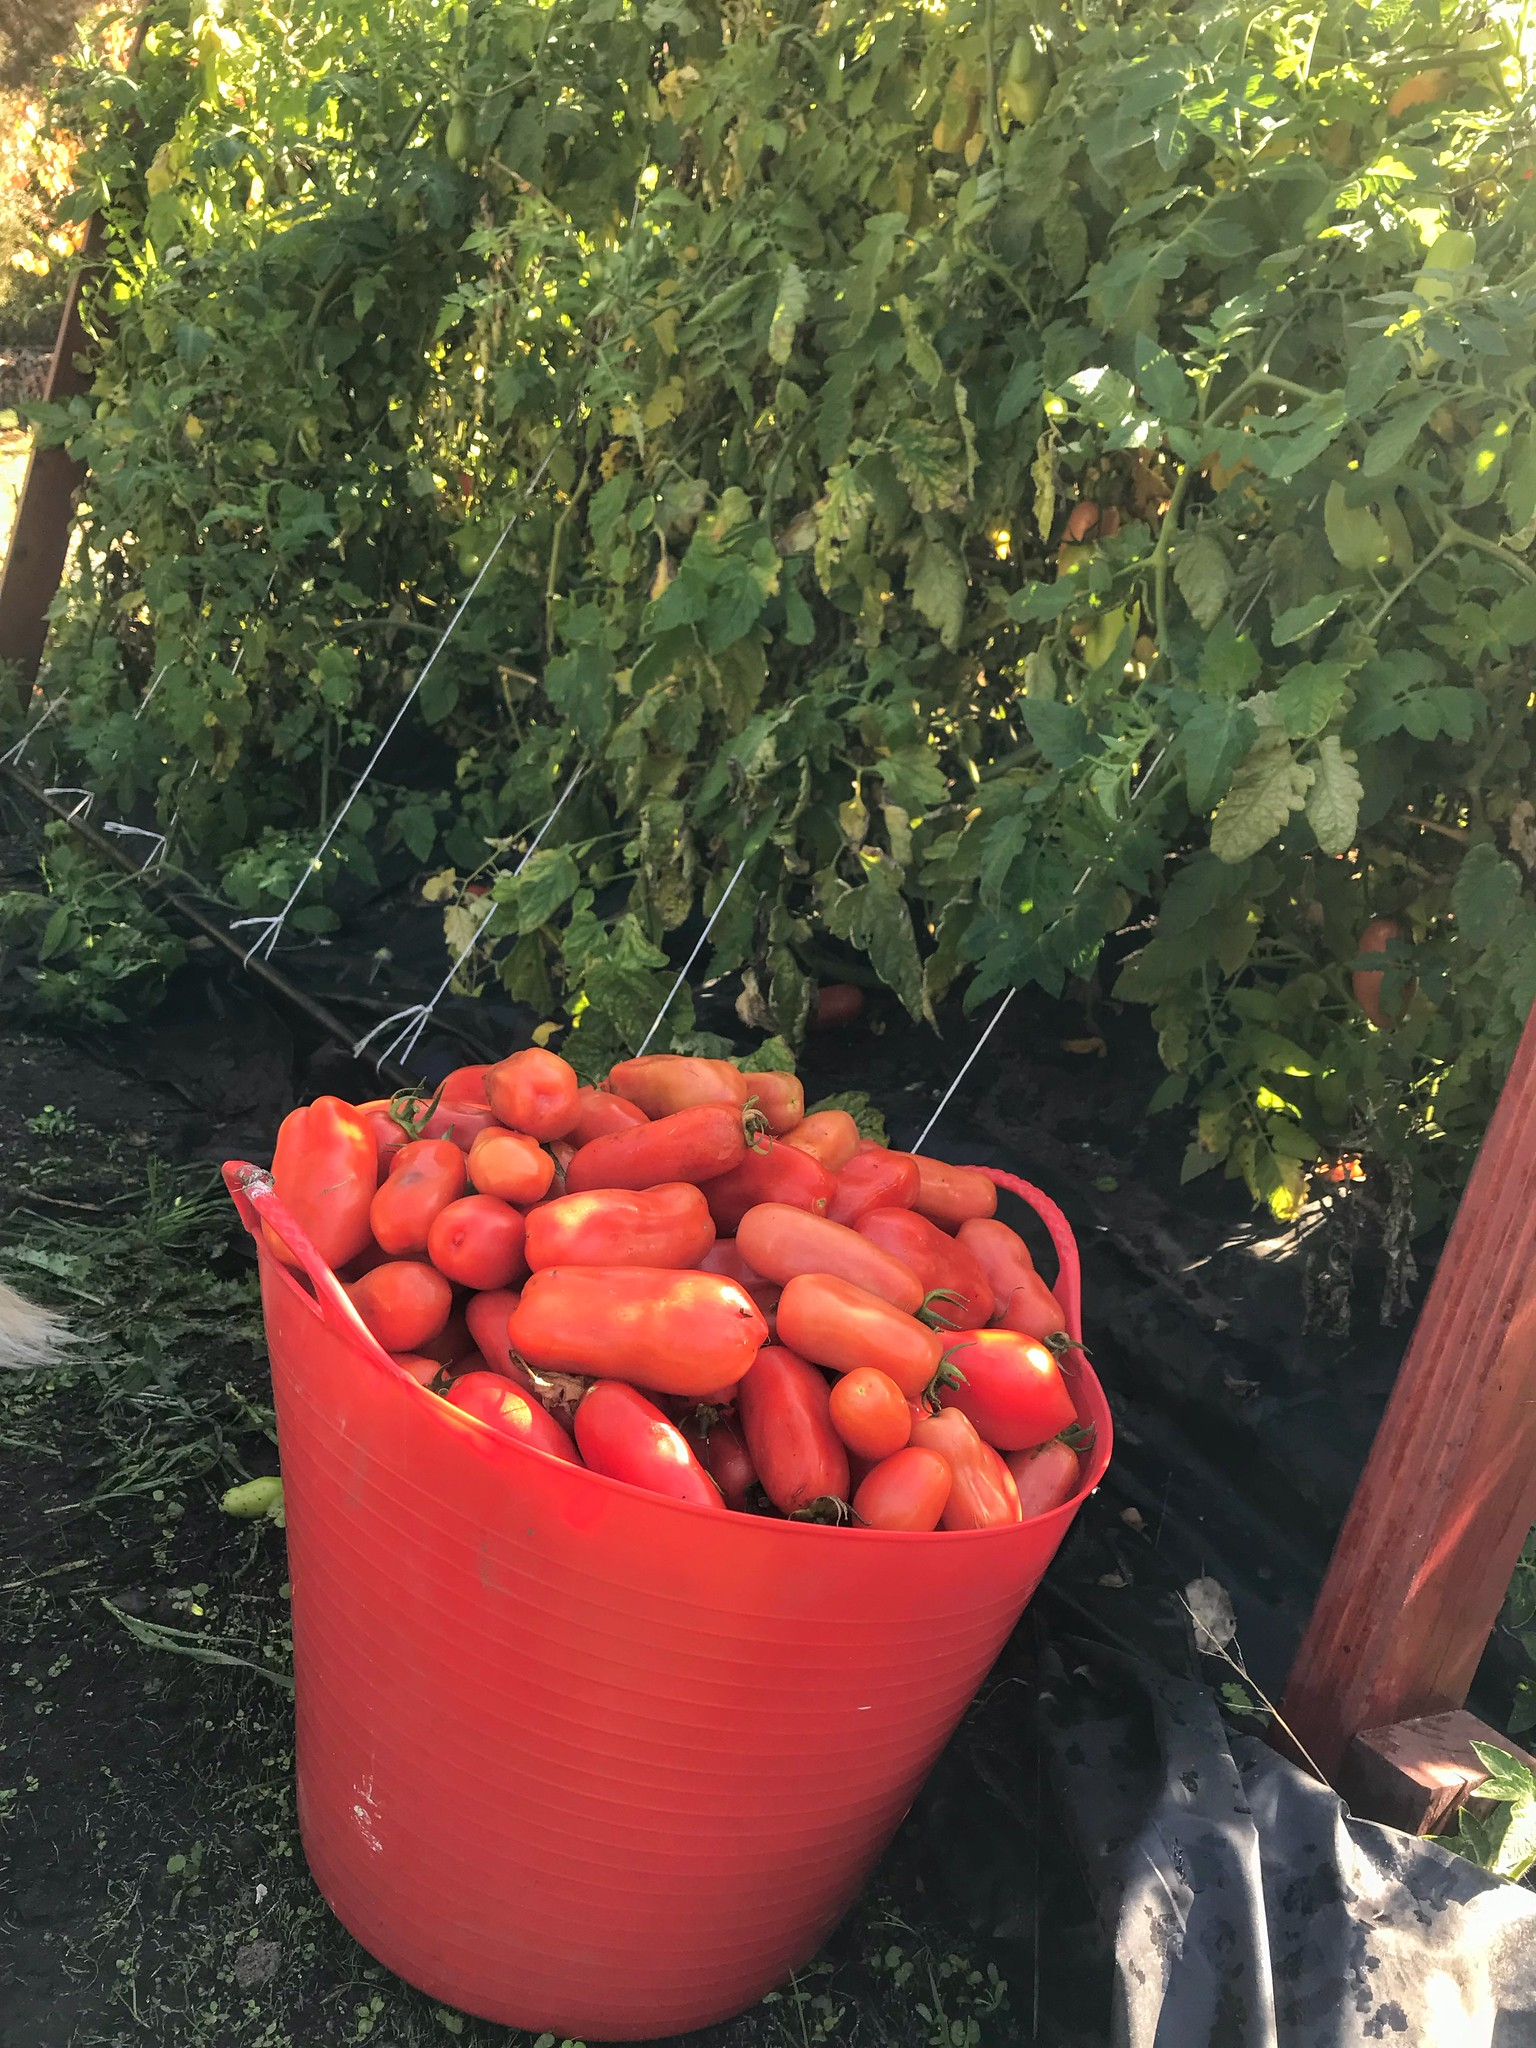 Another bucket of tomatoes